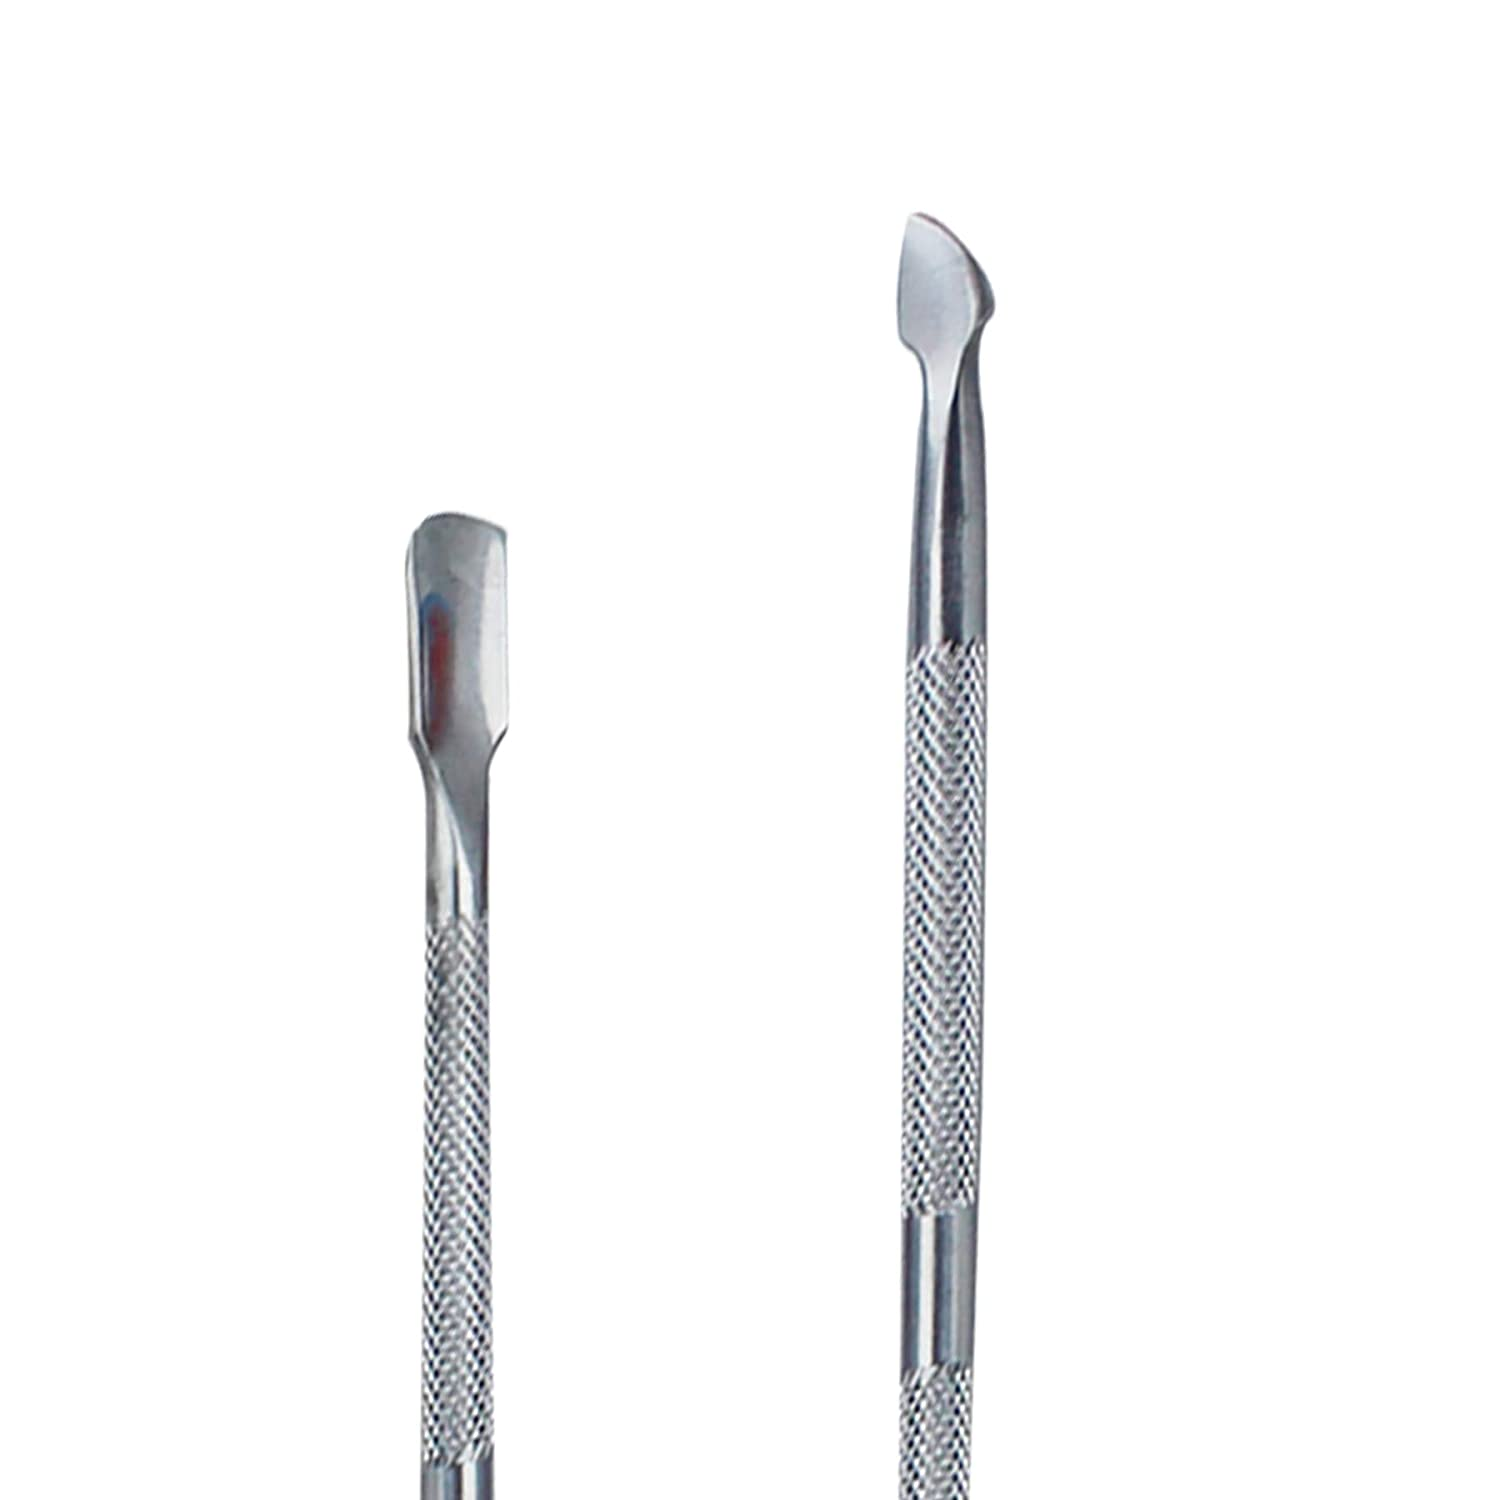 3X Stainless Steel Metal Nail Cuticle Pusher Scraper Polish Gel Remover Manicure Lillyvale